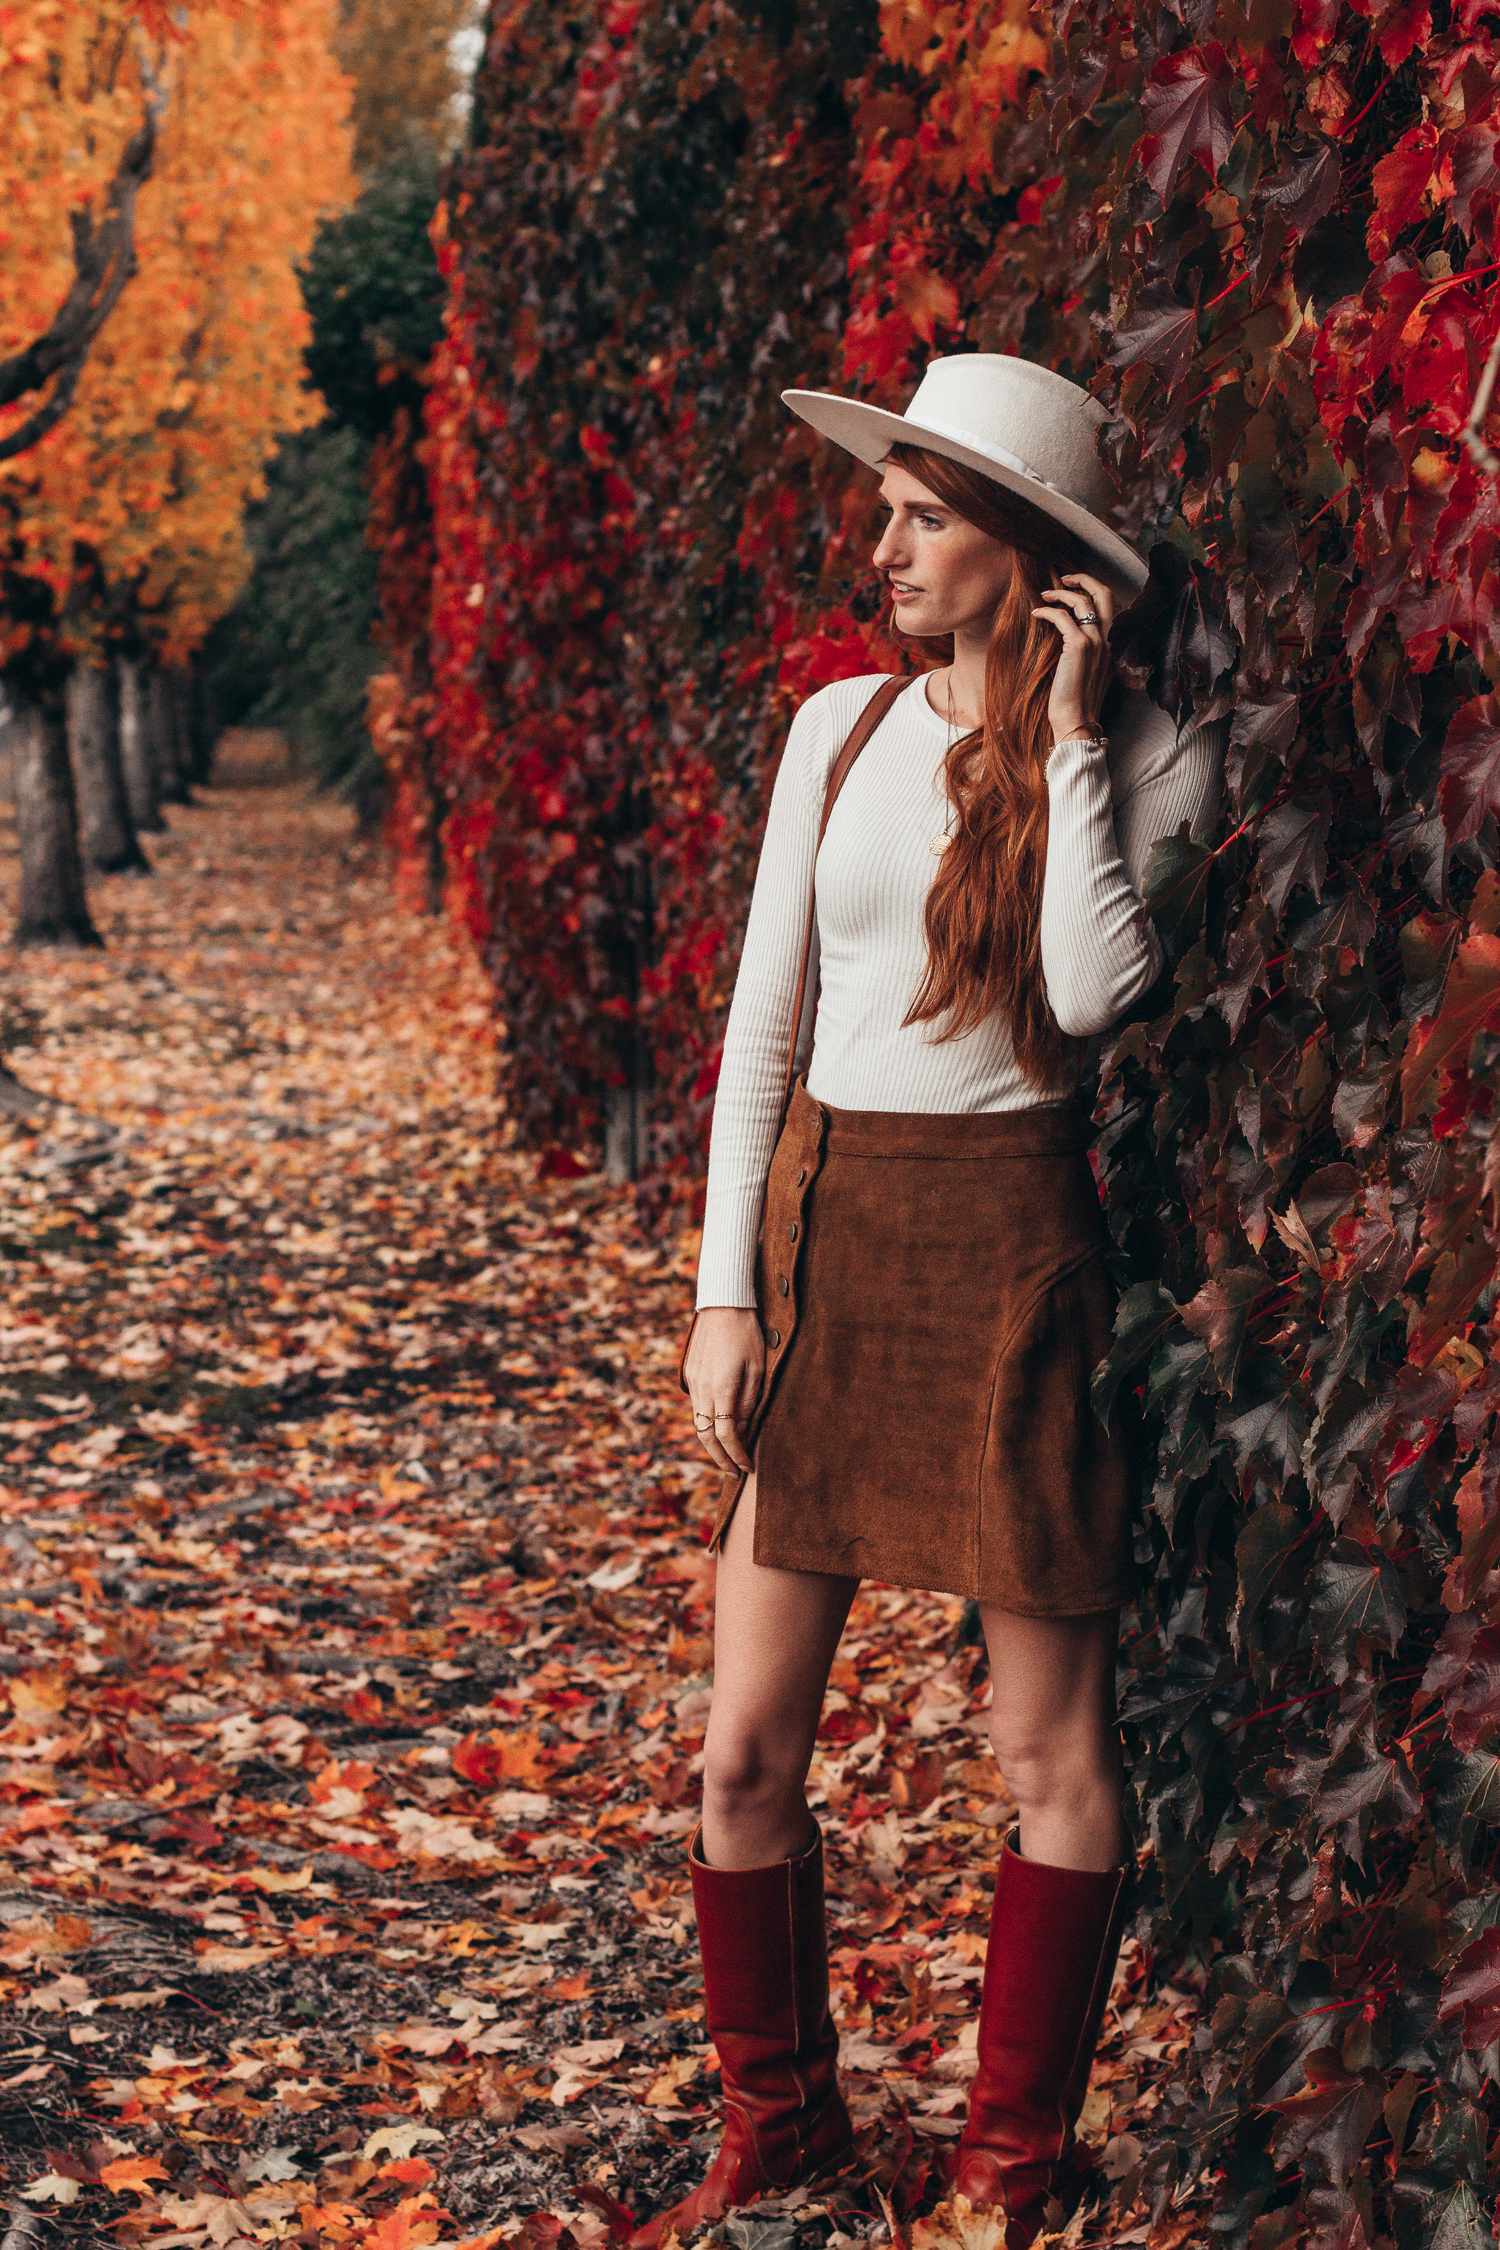 How To Style A Brown And White Outfit For Fall